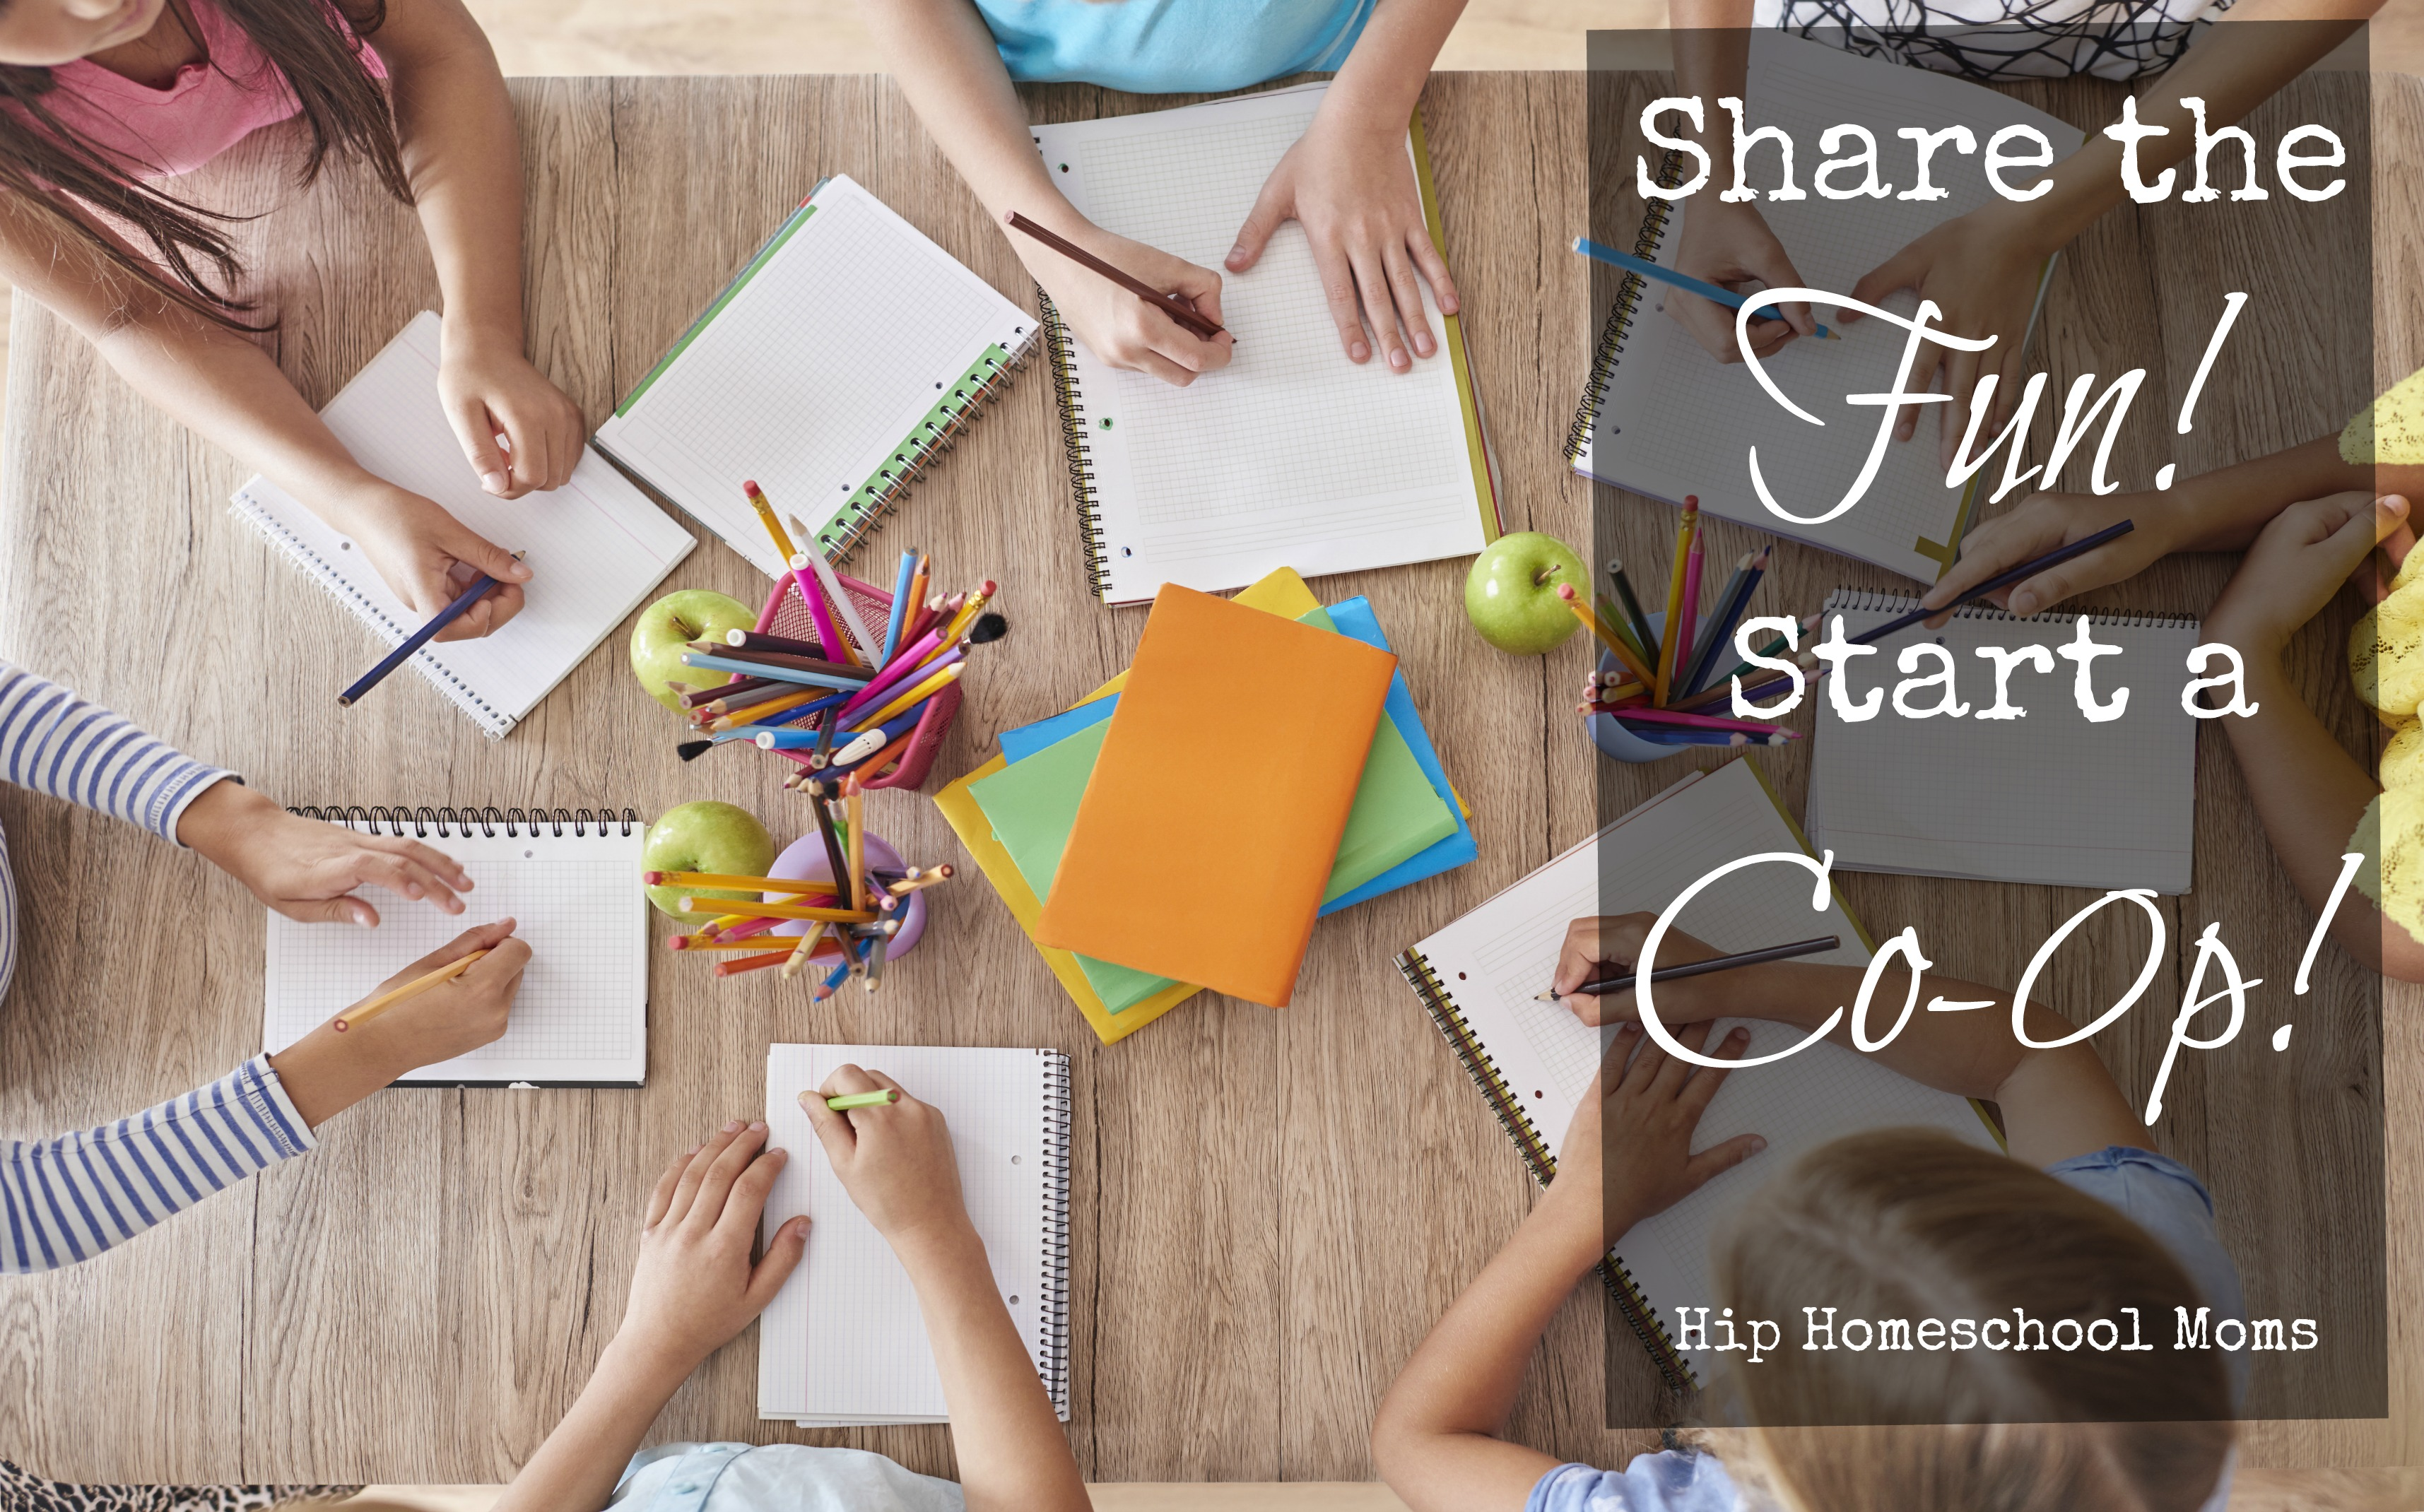 Share the Fun – Start a Co-op